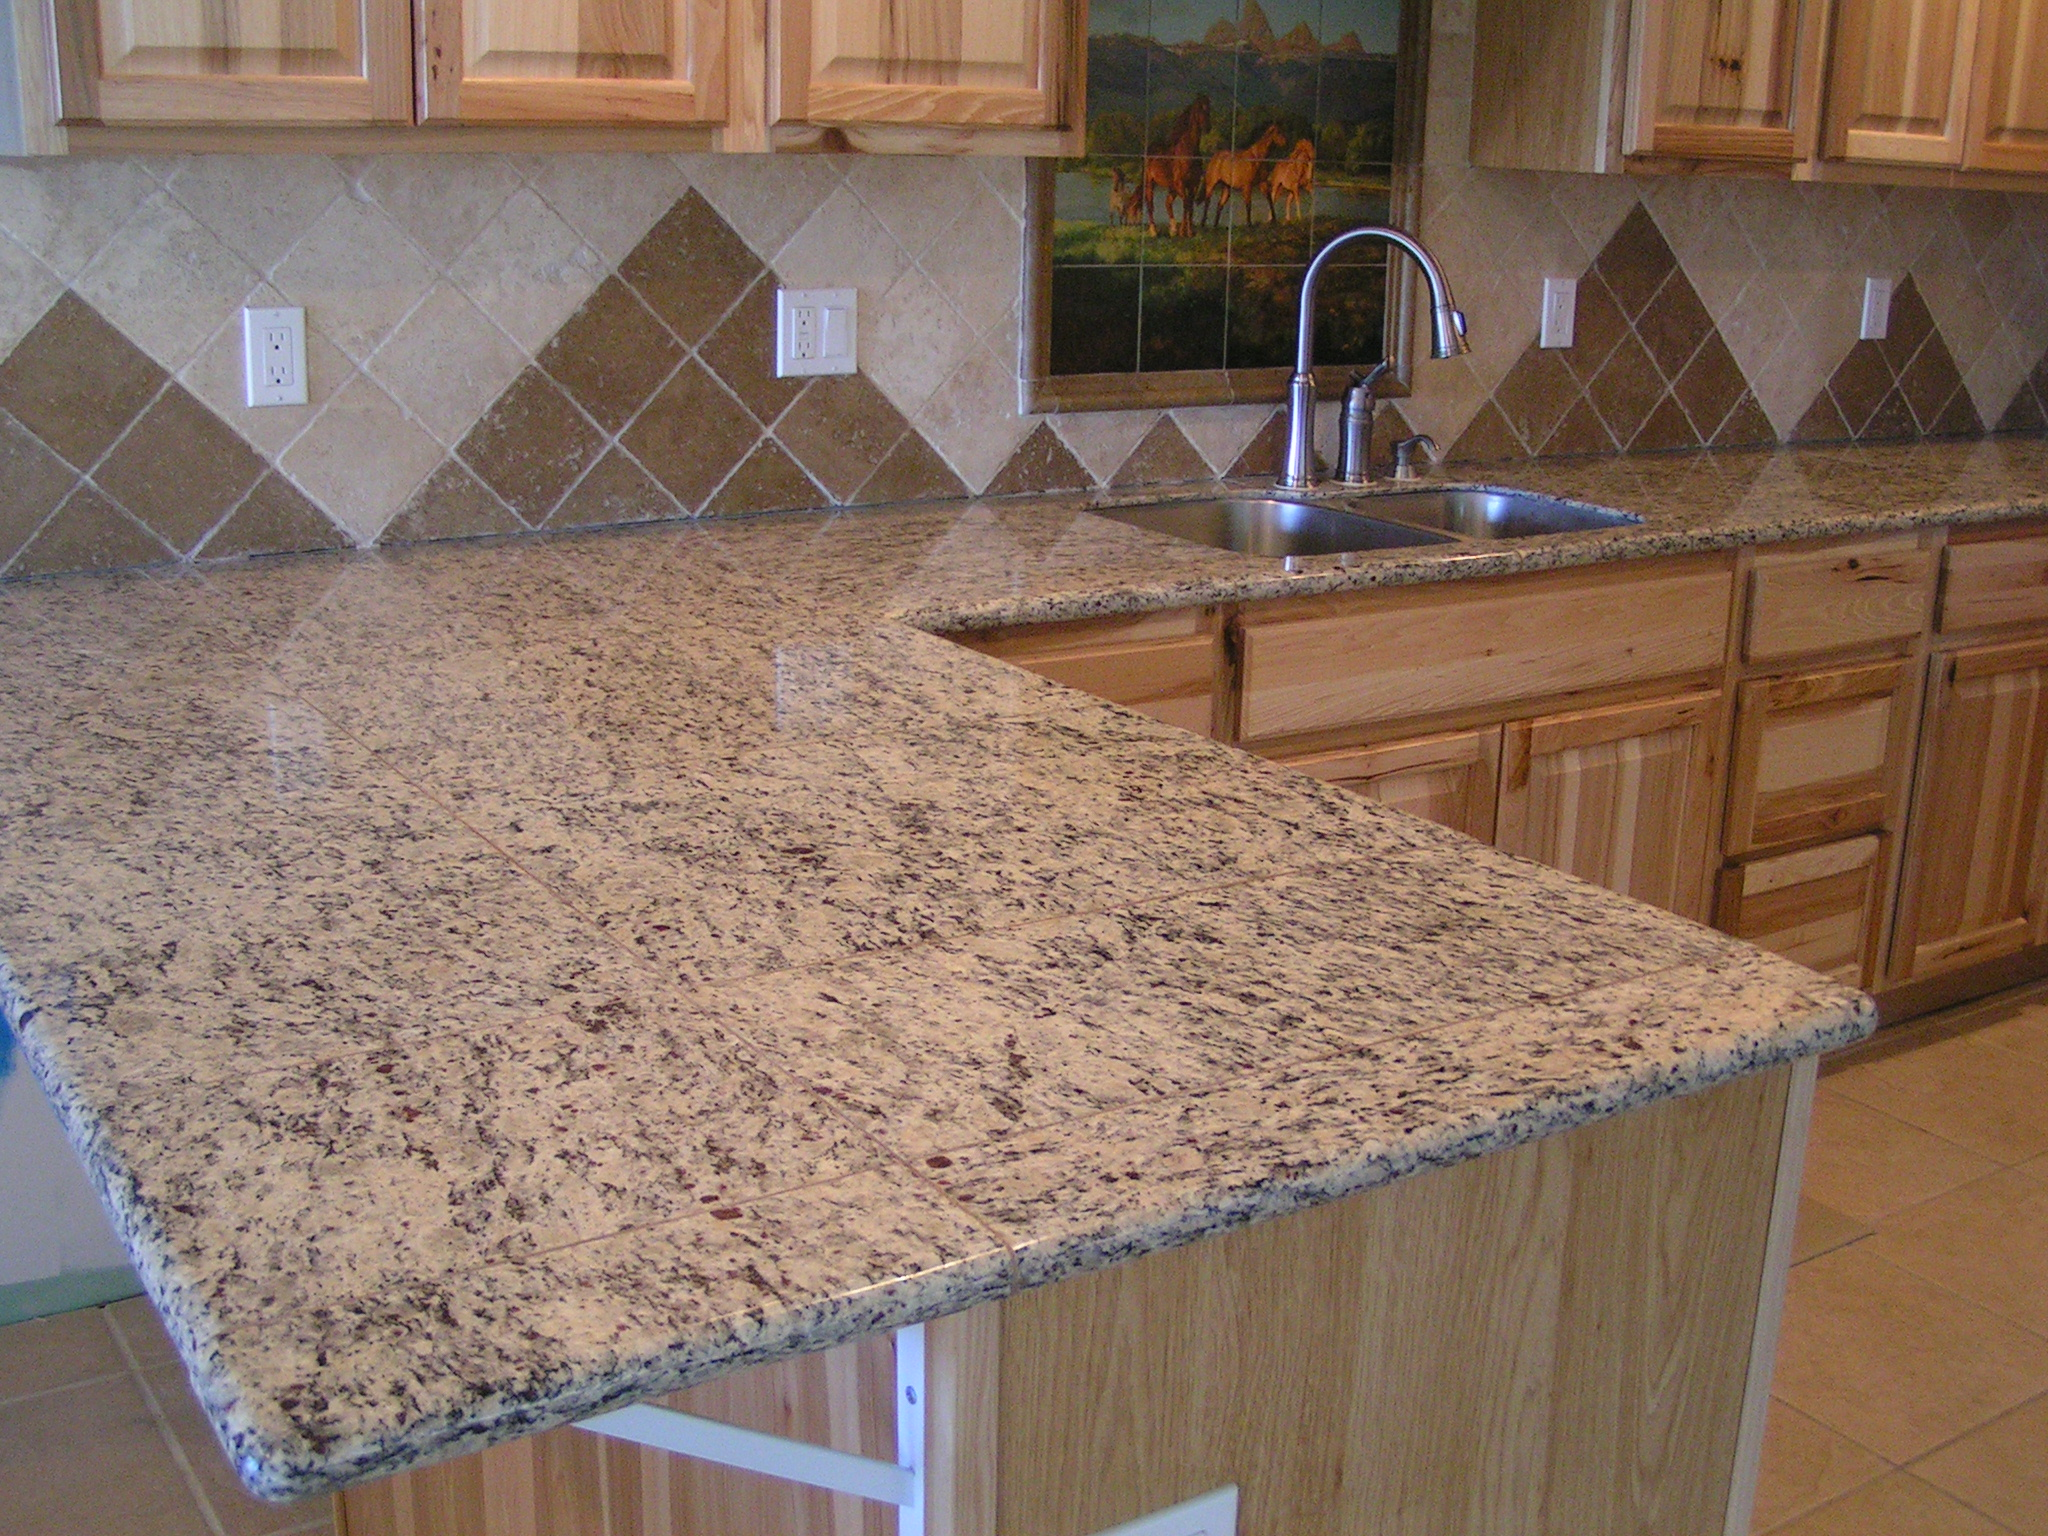 Granite Tile Kitchen Counter Lazy Granite Denver Shower Doors Denver Granite Countertops